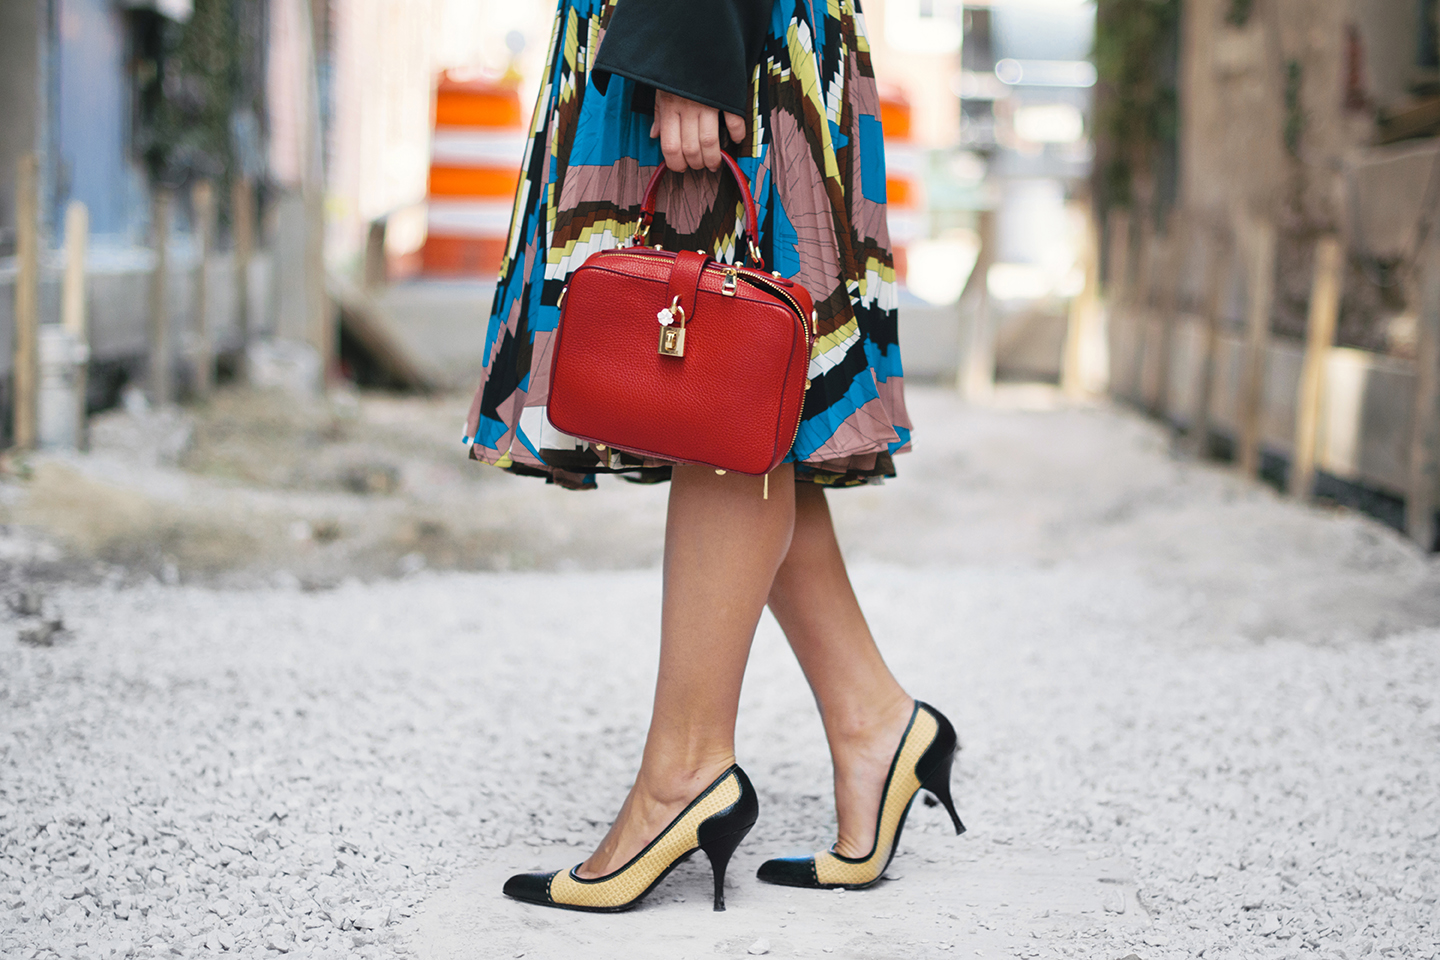 dolce-and-gabbana-purse-red-prada-shoes